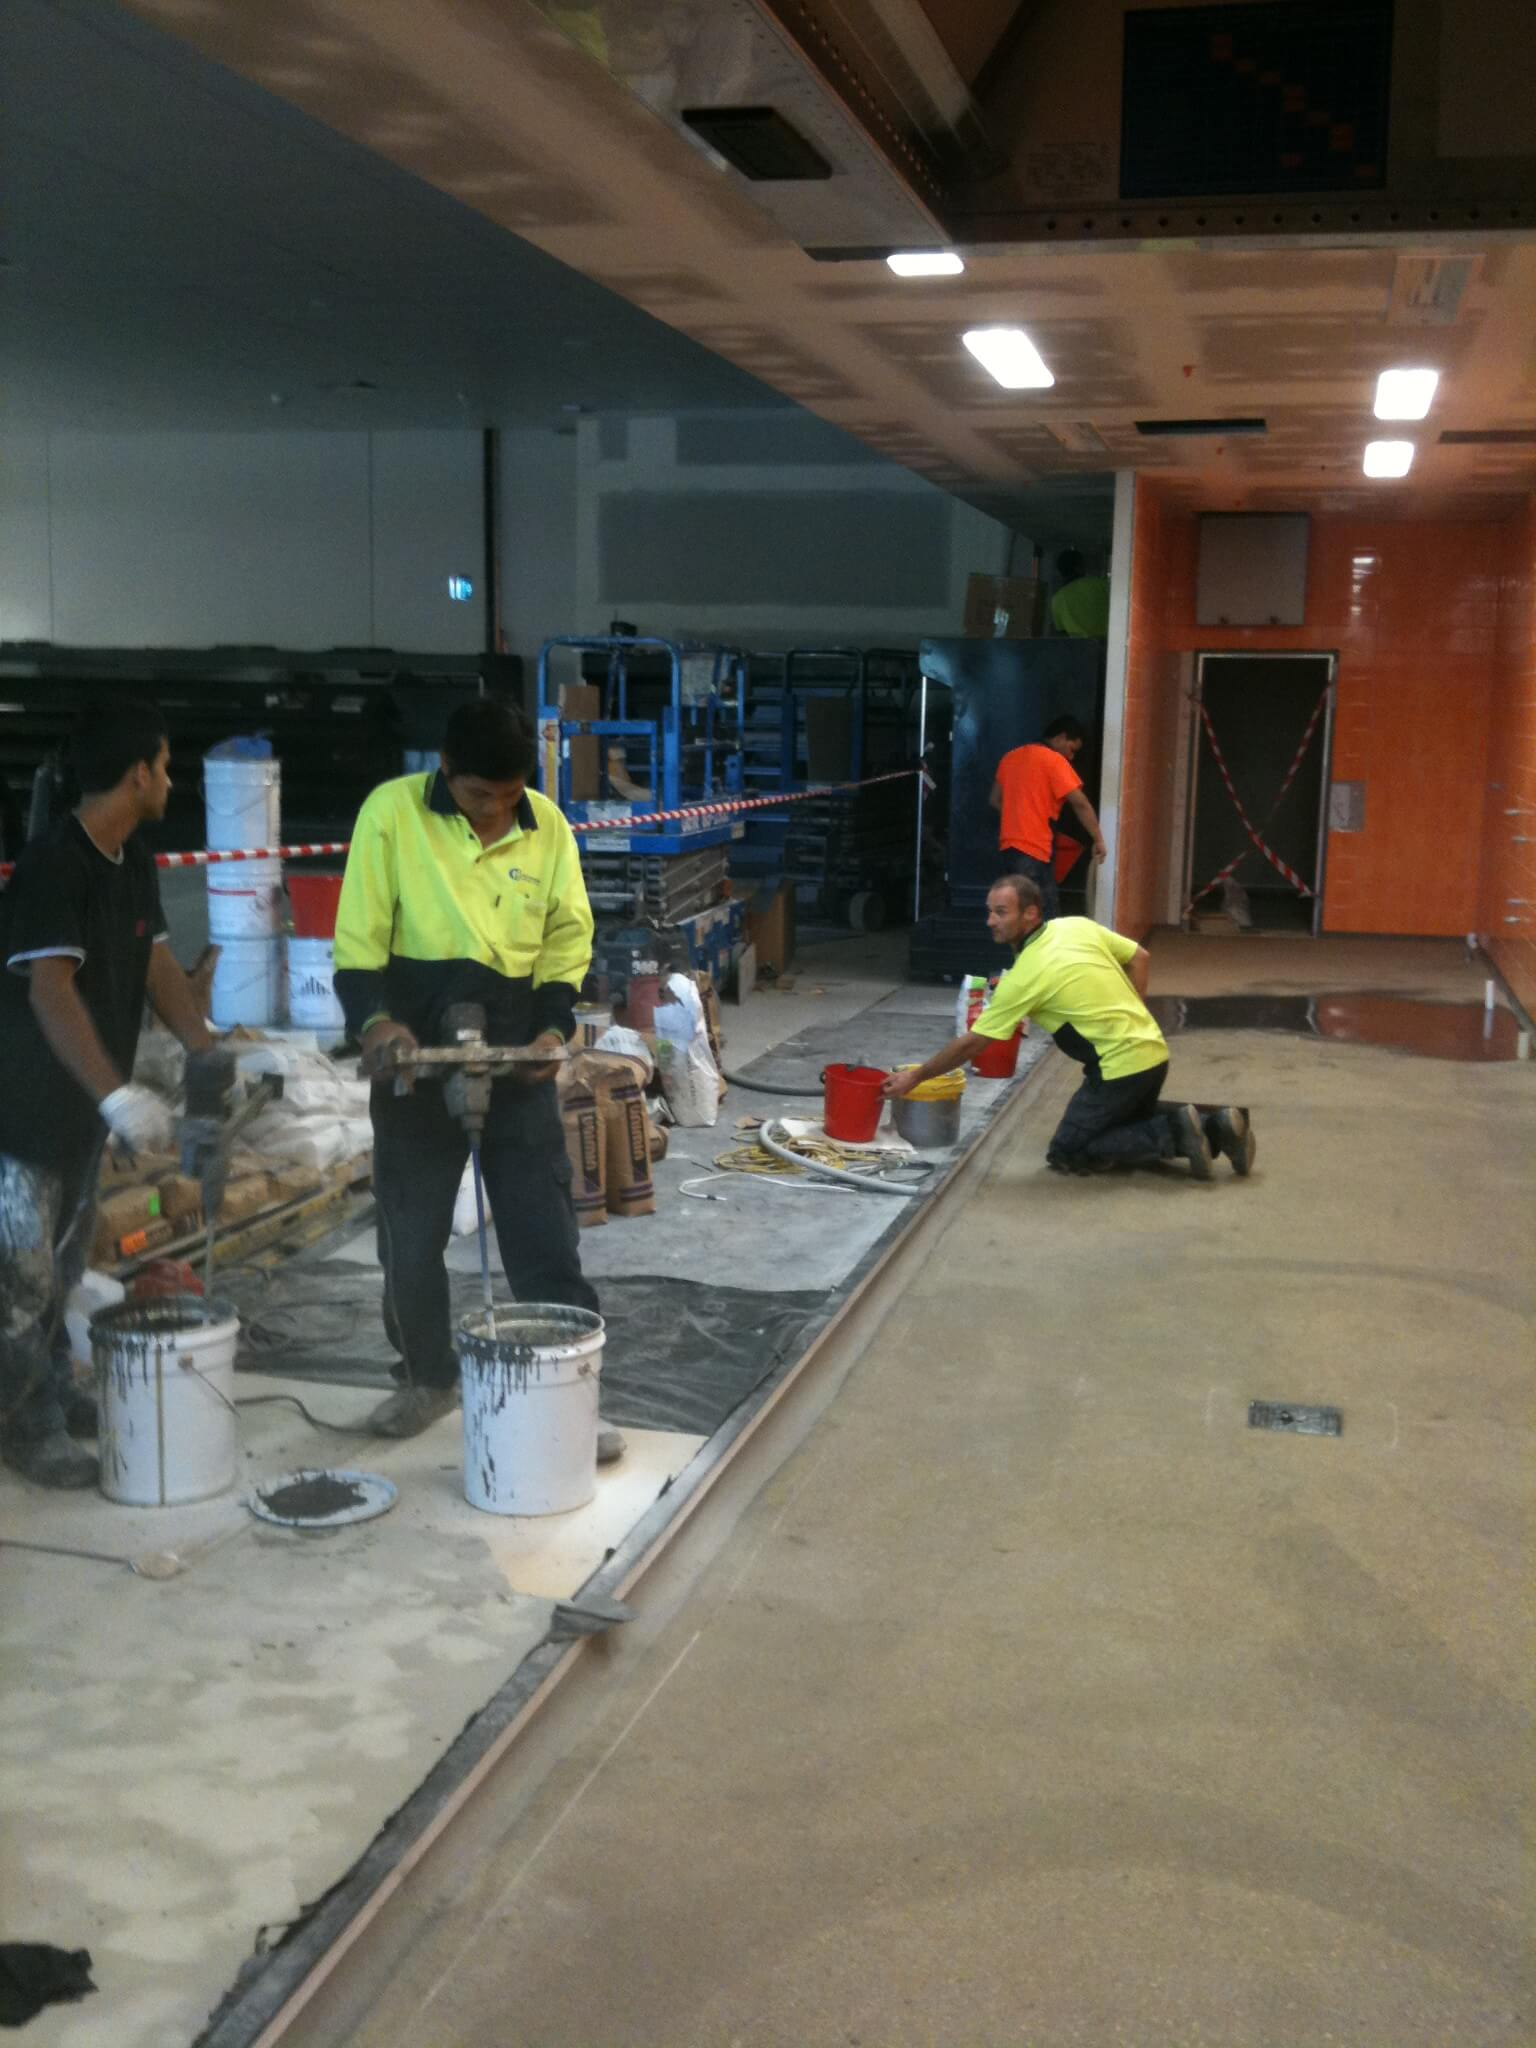 Remedial Team Working On Flooring Surface - Epoxy Flooring - Remedial Building Services